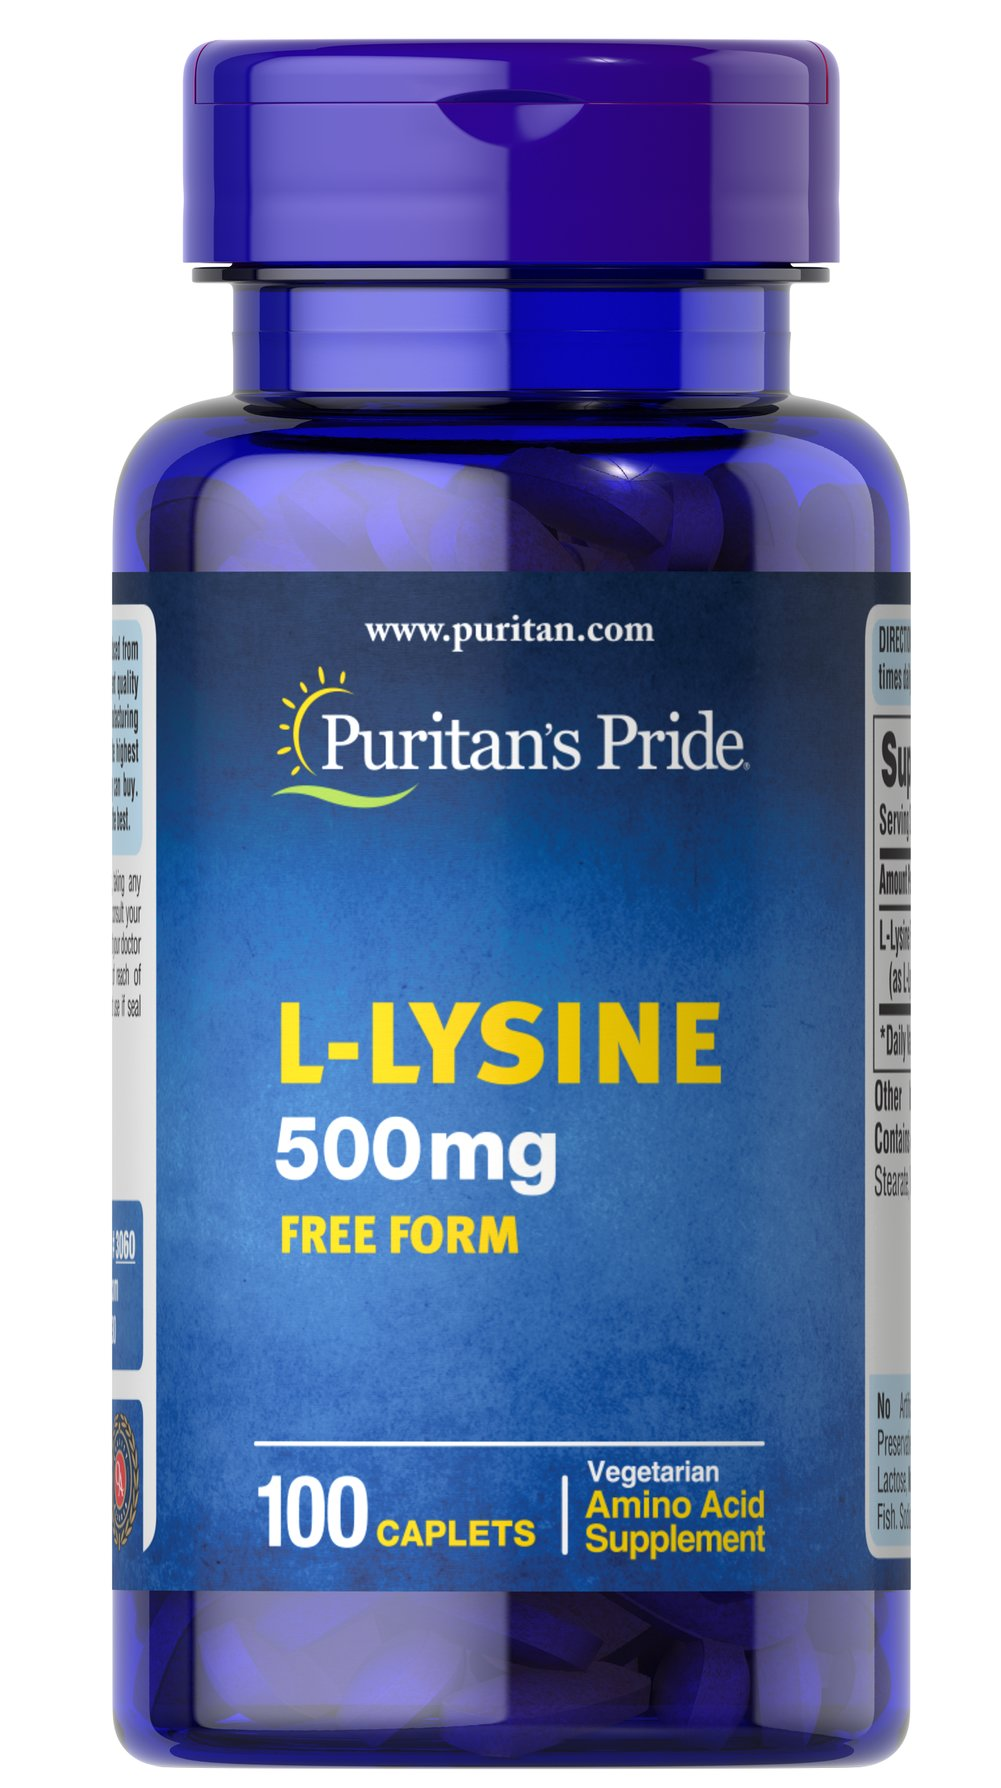 L-Lysine 500 mg <p>For Balanced Nutrition and Health**</p><p>Lysine is an indispensable amino acid that cannot be made by the body.** Amino acids form the basis for protein, which helps construct and maintain the critical structures in the body.** Lysine is also used for the health and integrity of skin.**</p> 100 Caplets 500 mg $6.69